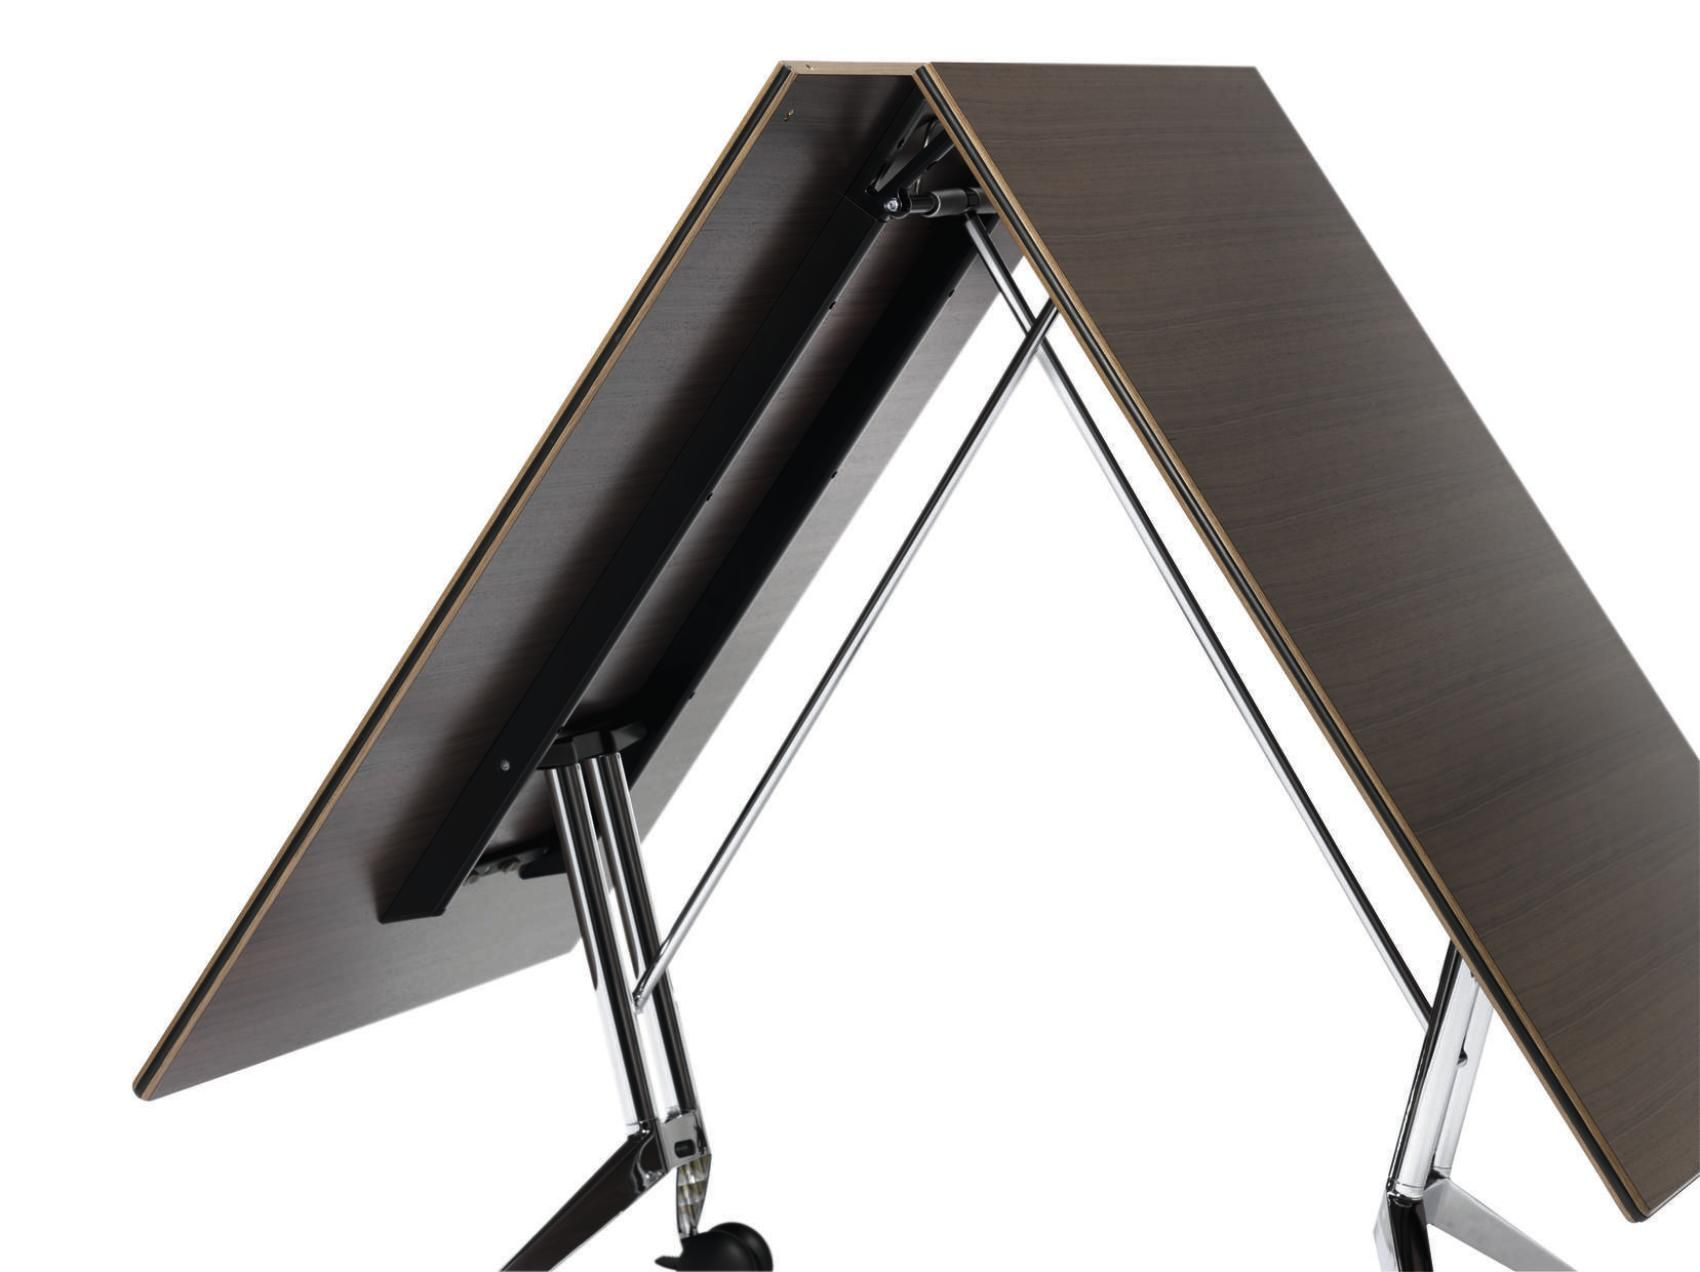 CONFAIR Folding Table Foldable Conference Table Design Andreas - Folding boardroom table